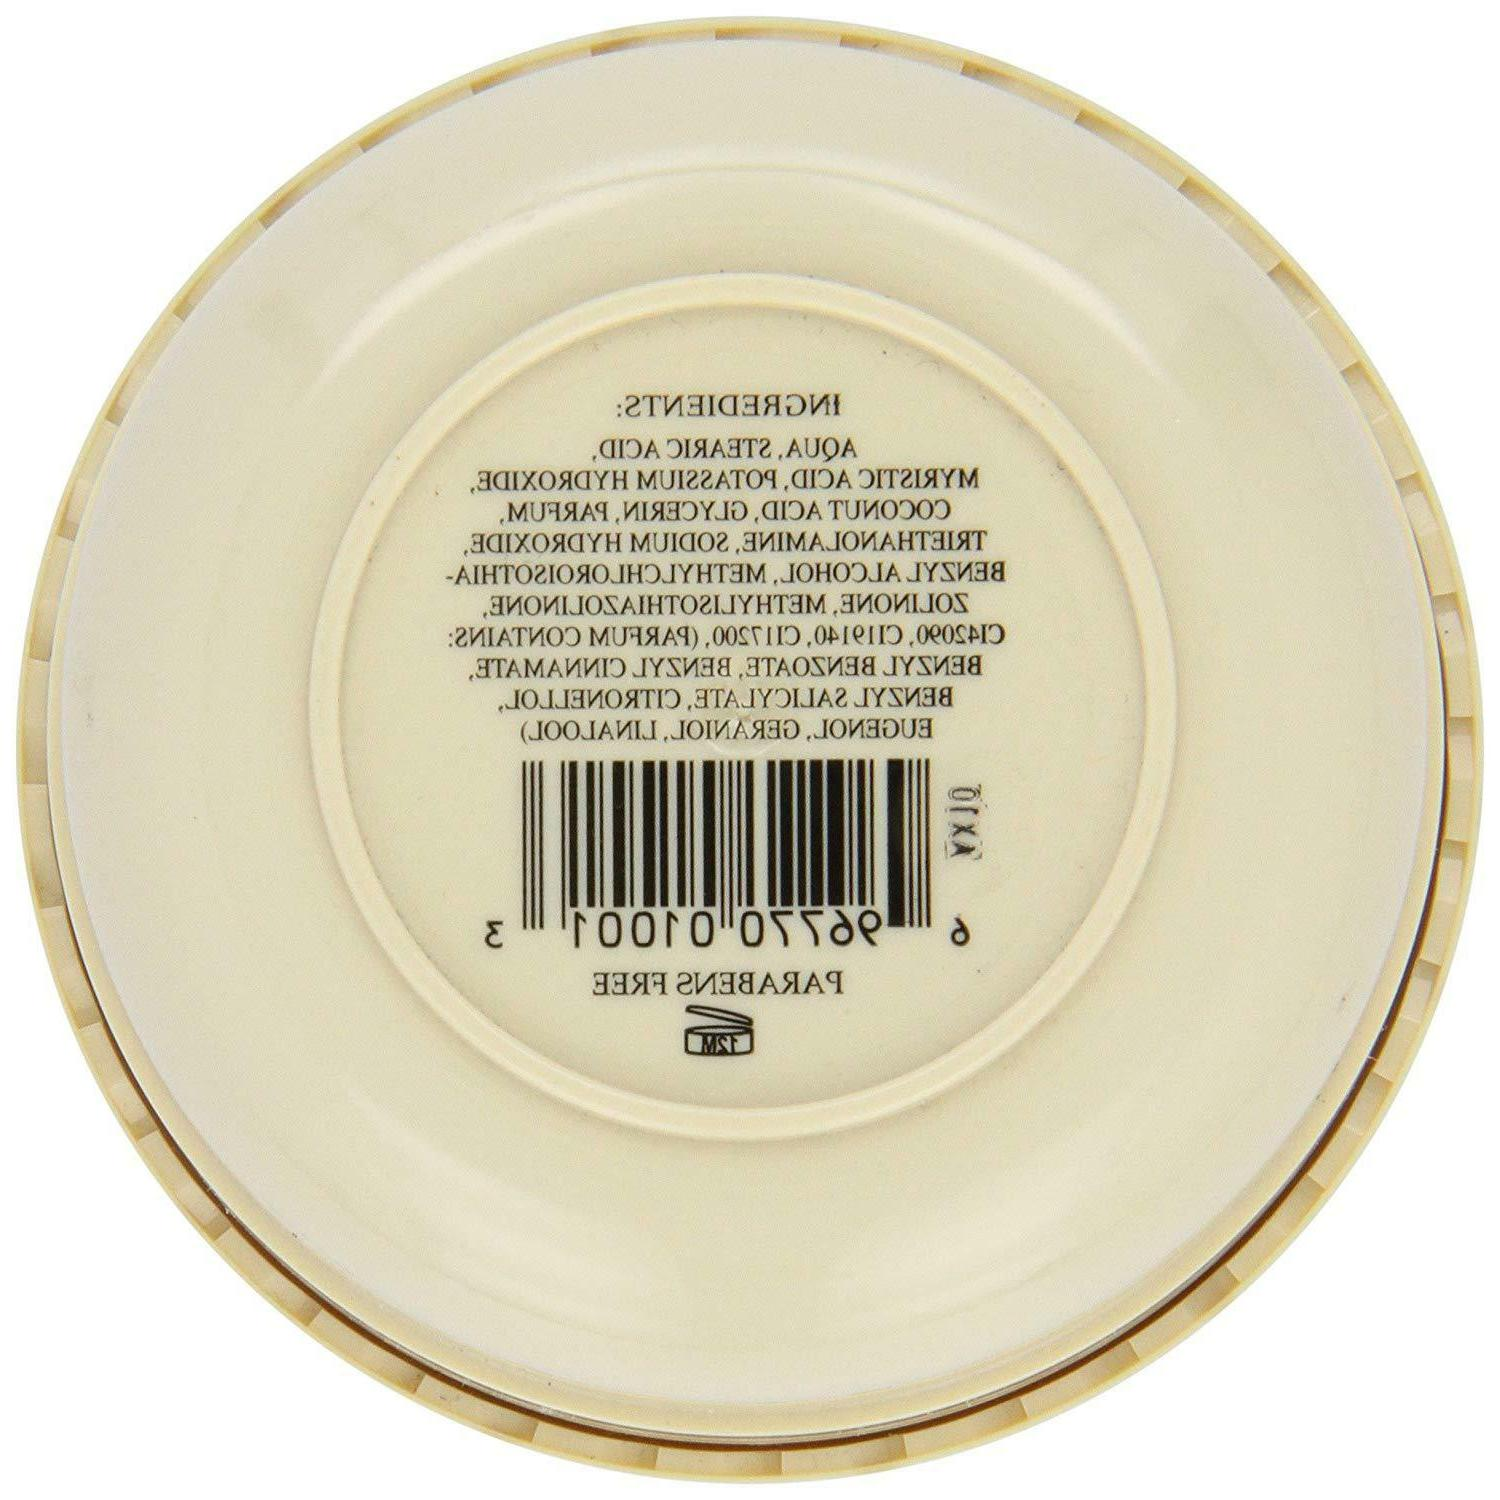 Taylor Bond Street Sandalwood Shaving Cream Bowl,